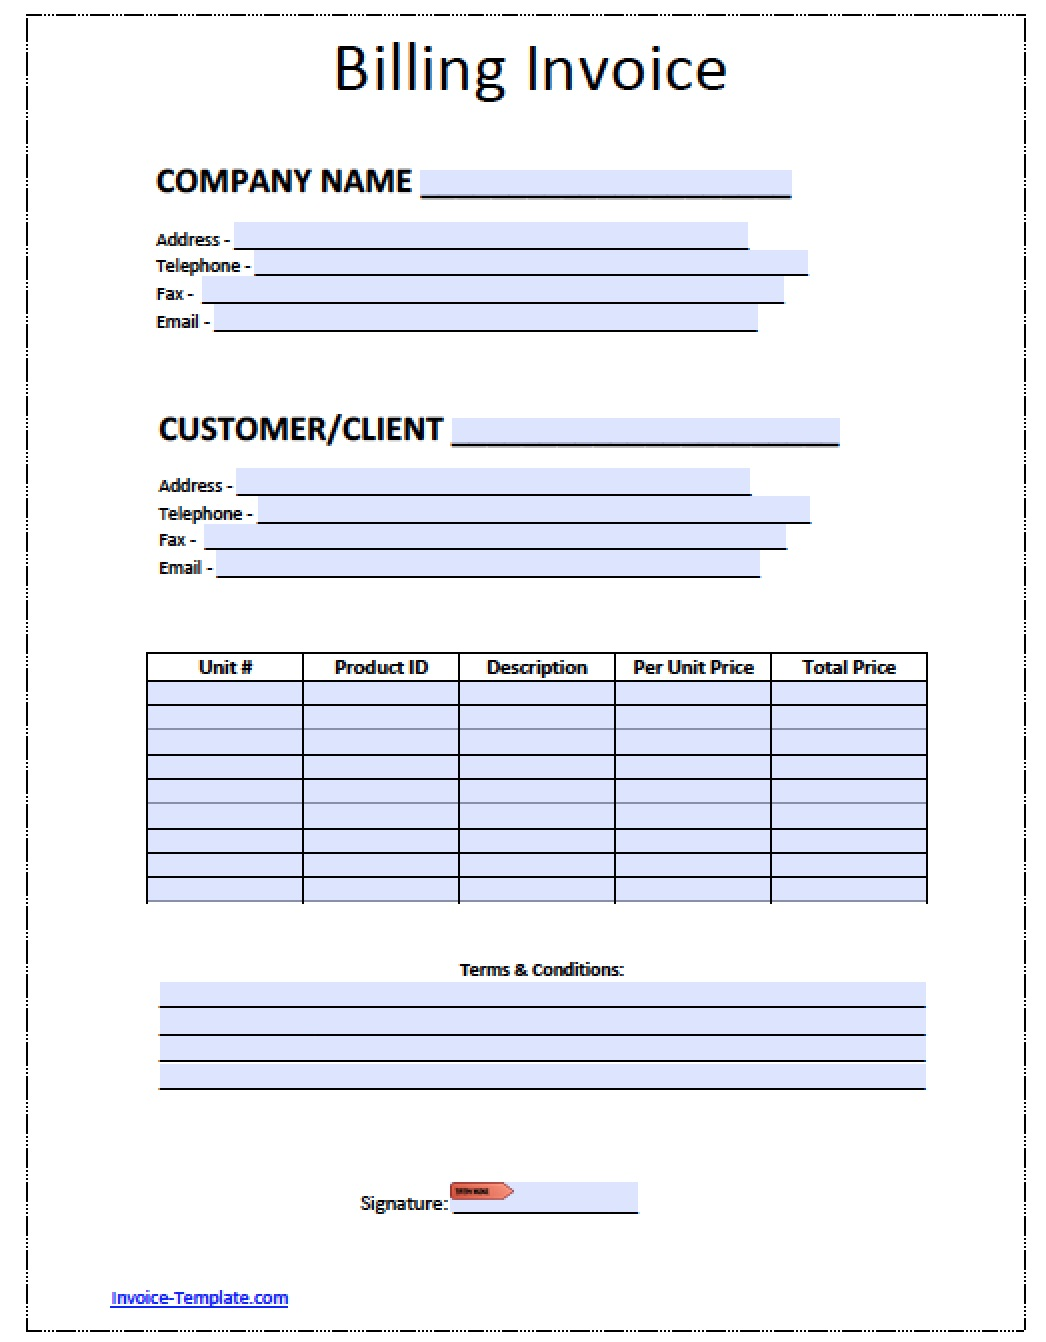 Hucareus  Outstanding Billing Invoice Invoices Faq U Cloudflare Support Billing  With Luxury Free Billing Invoice Template  Excel  Pdf  Word Doc  Billing With Charming Receipt Management Software Also What Is An E Receipt In Addition Lee County Business Tax Receipt And Electronic Return Receipt As Well As Outlook Read Receipt  Additionally Postal Receipt Tracking Number From Happytomco With Hucareus  Luxury Billing Invoice Invoices Faq U Cloudflare Support Billing  With Charming Free Billing Invoice Template  Excel  Pdf  Word Doc  Billing And Outstanding Receipt Management Software Also What Is An E Receipt In Addition Lee County Business Tax Receipt From Happytomco